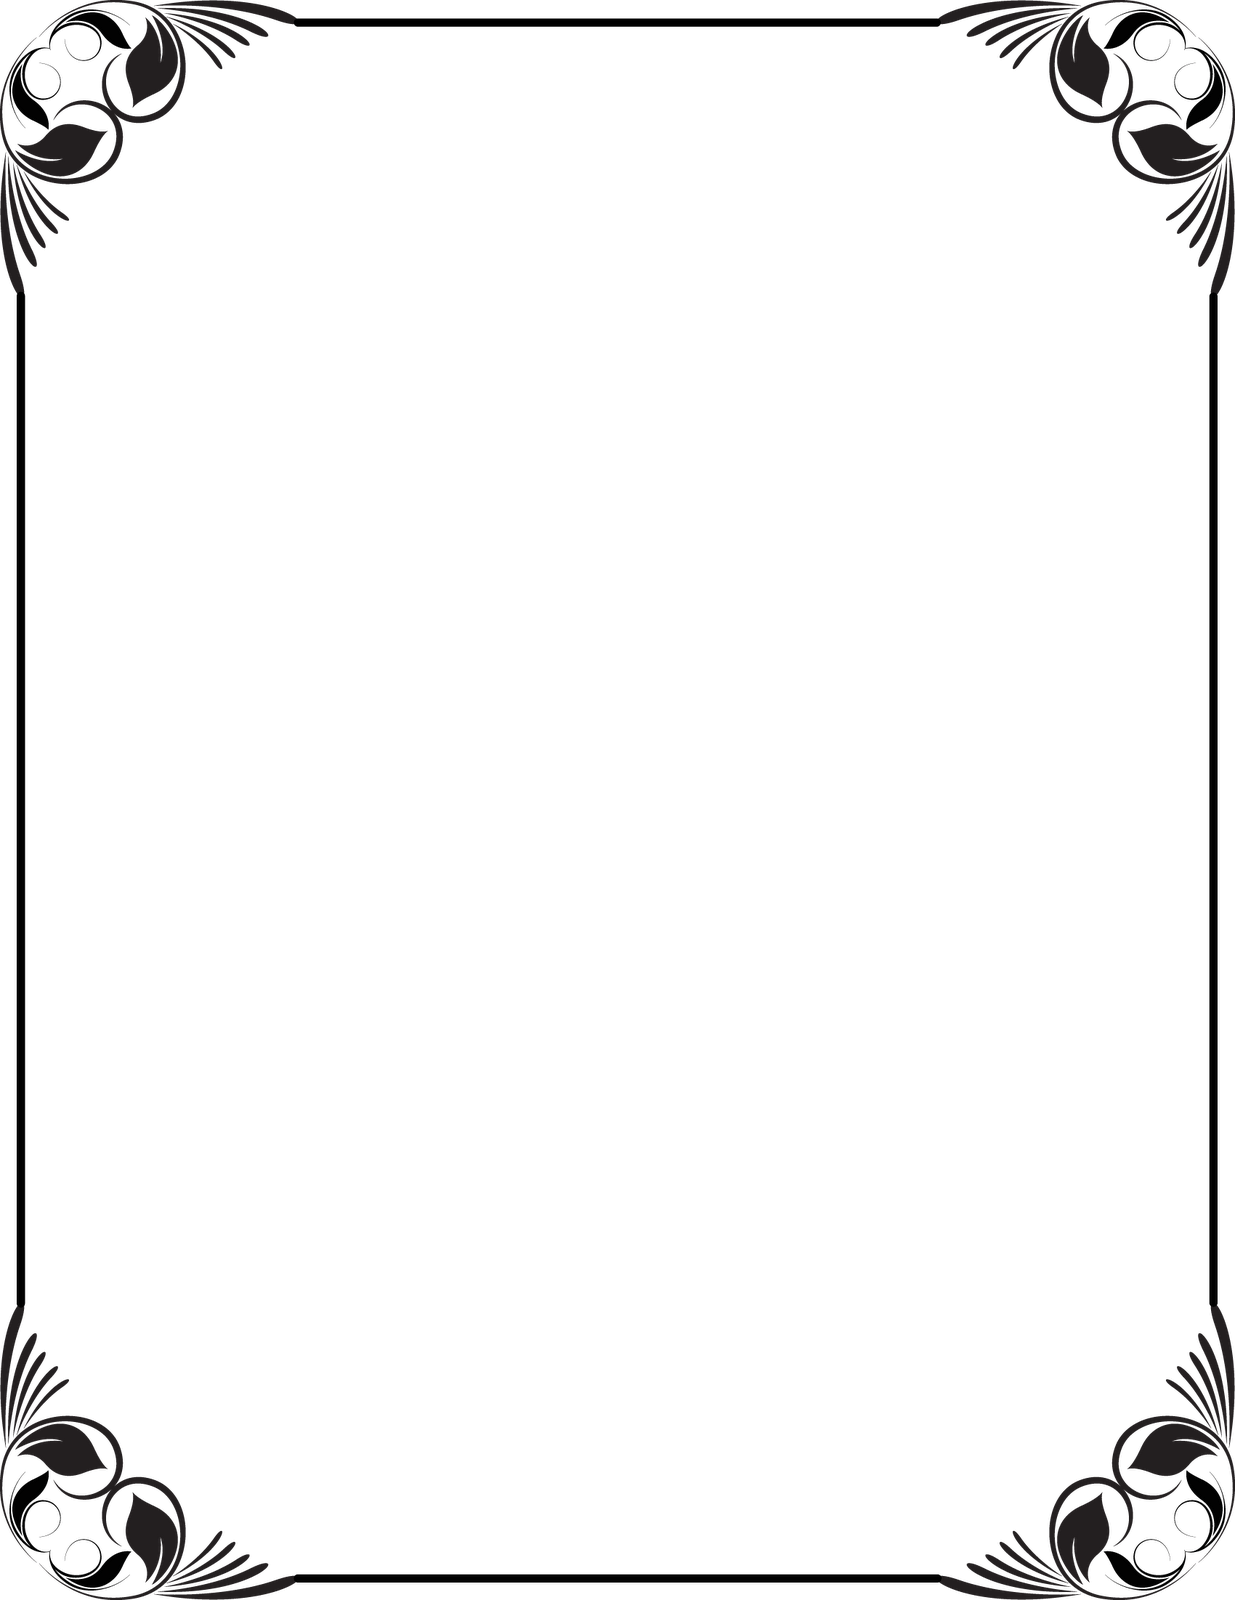 Collection Of Free Frames Vector Black And White On - Black And White Frame Borders Design (1235x1600), Png Download